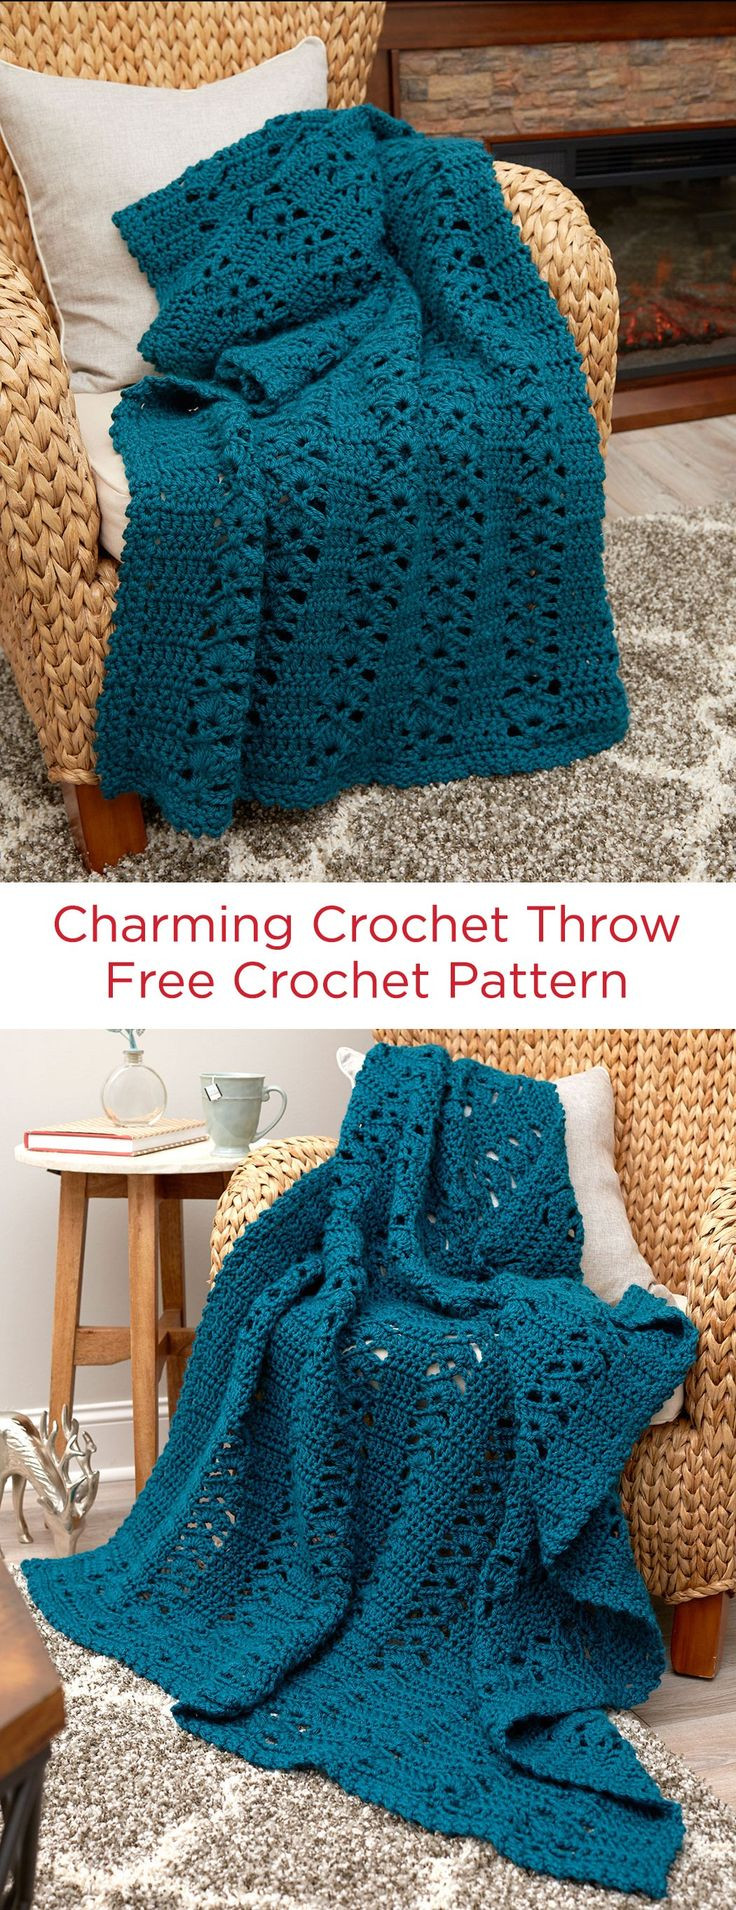 Softest Yarn for Crochet New 25 Best Ideas About Red Heart Yarn Colors On Pinterest Of Charming 43 Images softest Yarn for Crochet